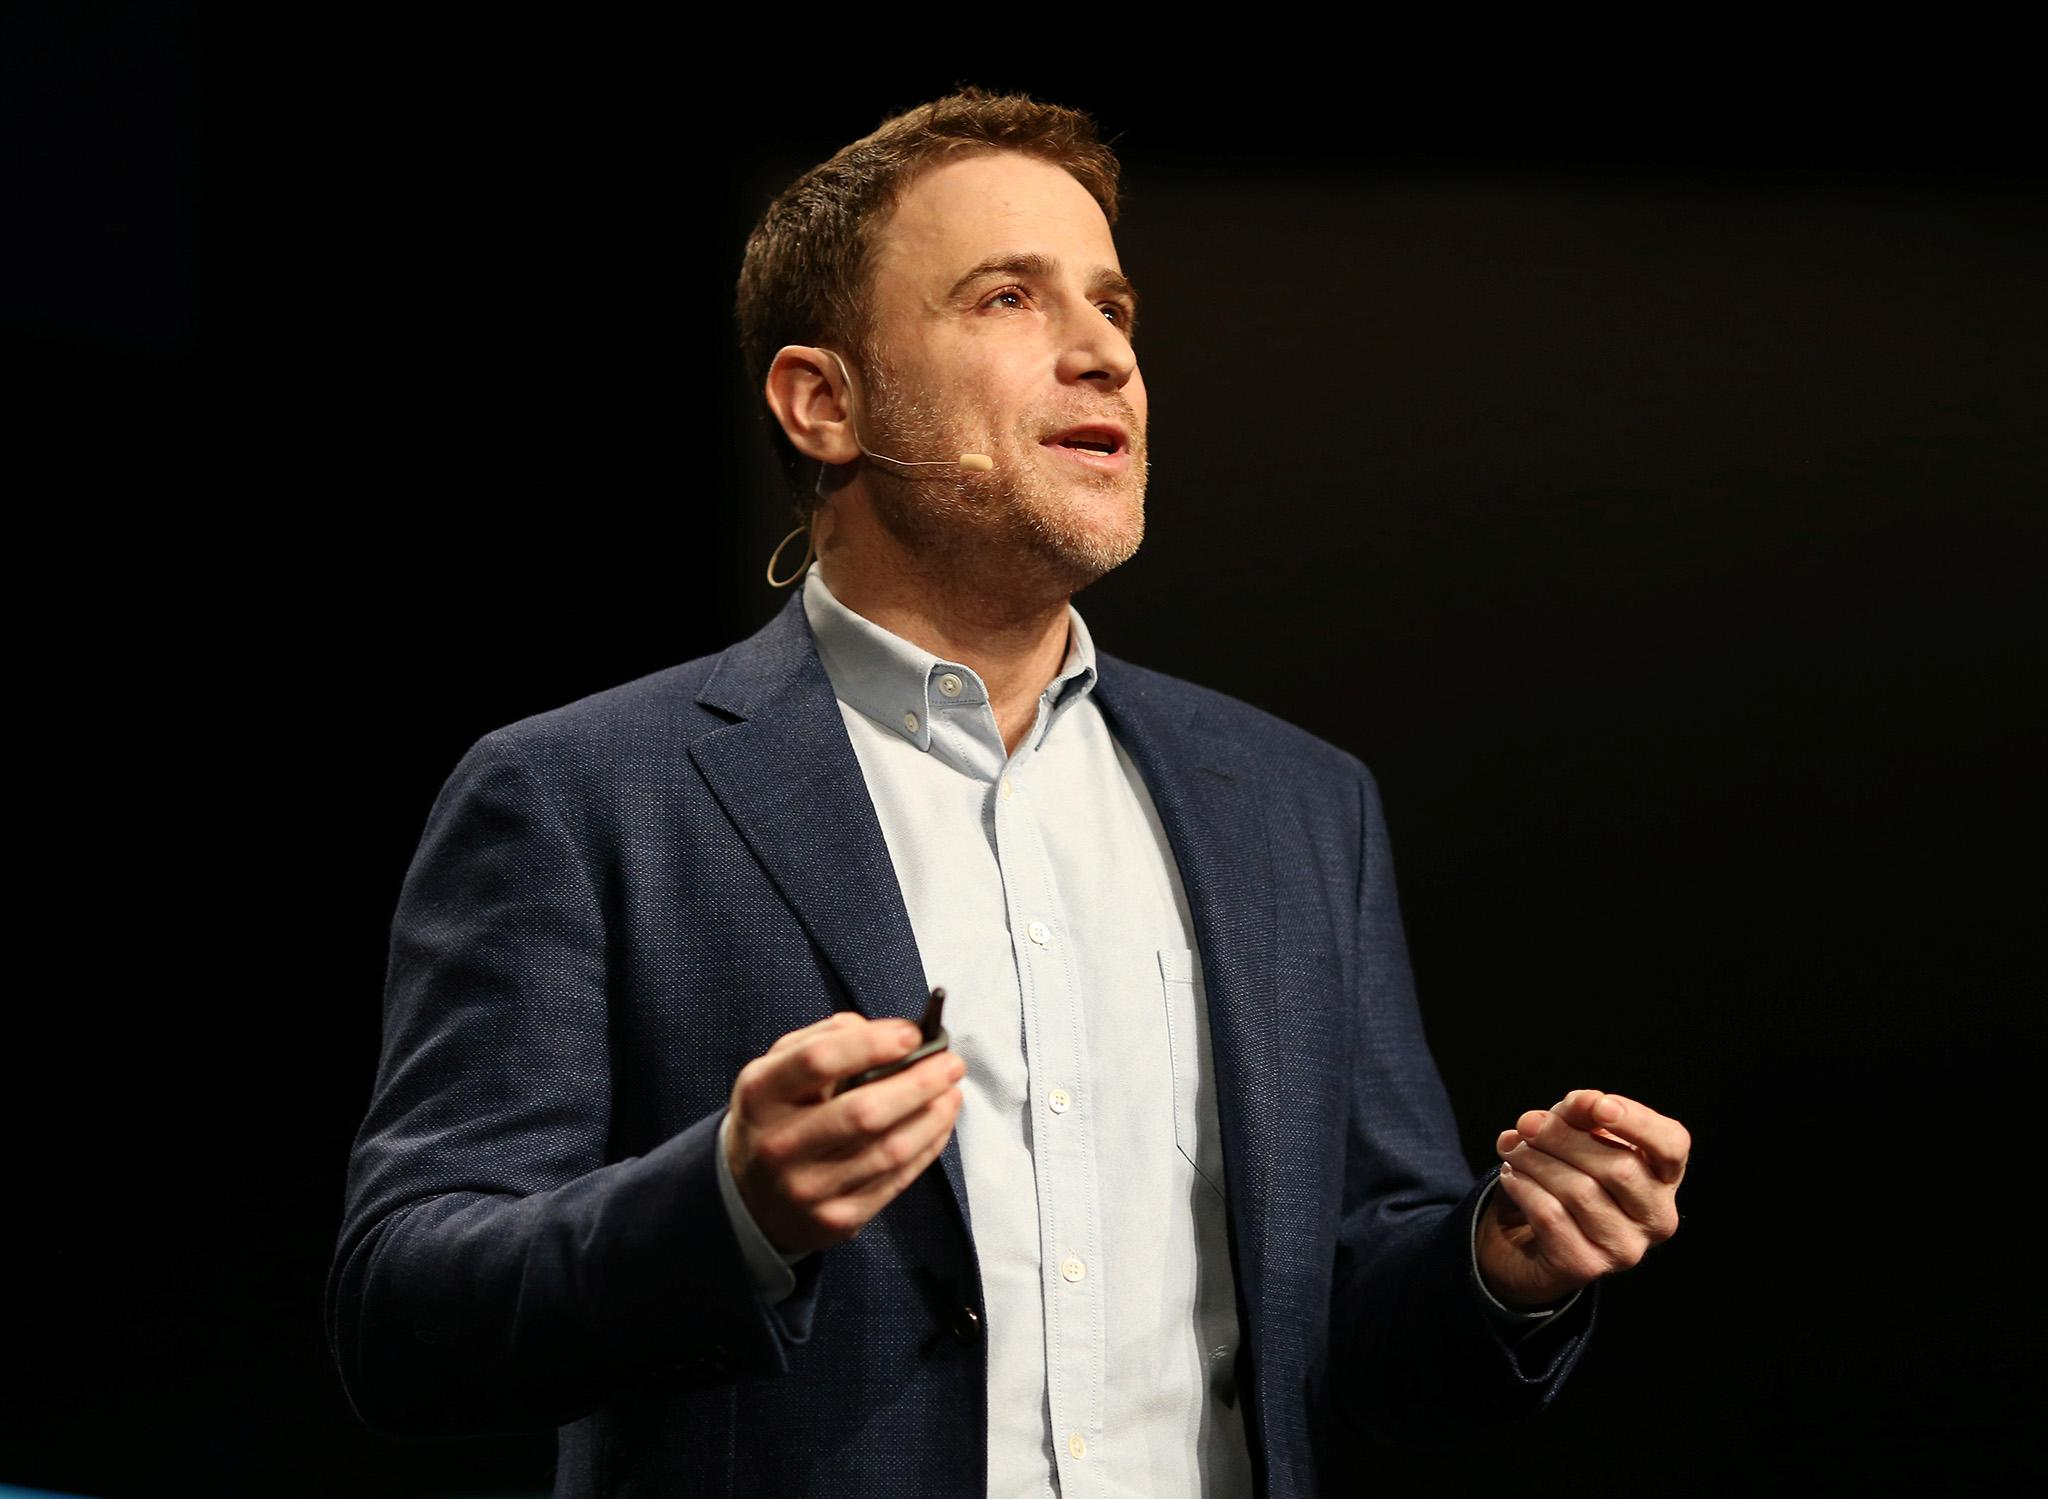 Silicon Valley billionaire Stewart Butterfield voices support for universal basic income - The founder of Slack joins illustrious company which includes Bill Gates, Elon Musk, and Mark Zuckerberg